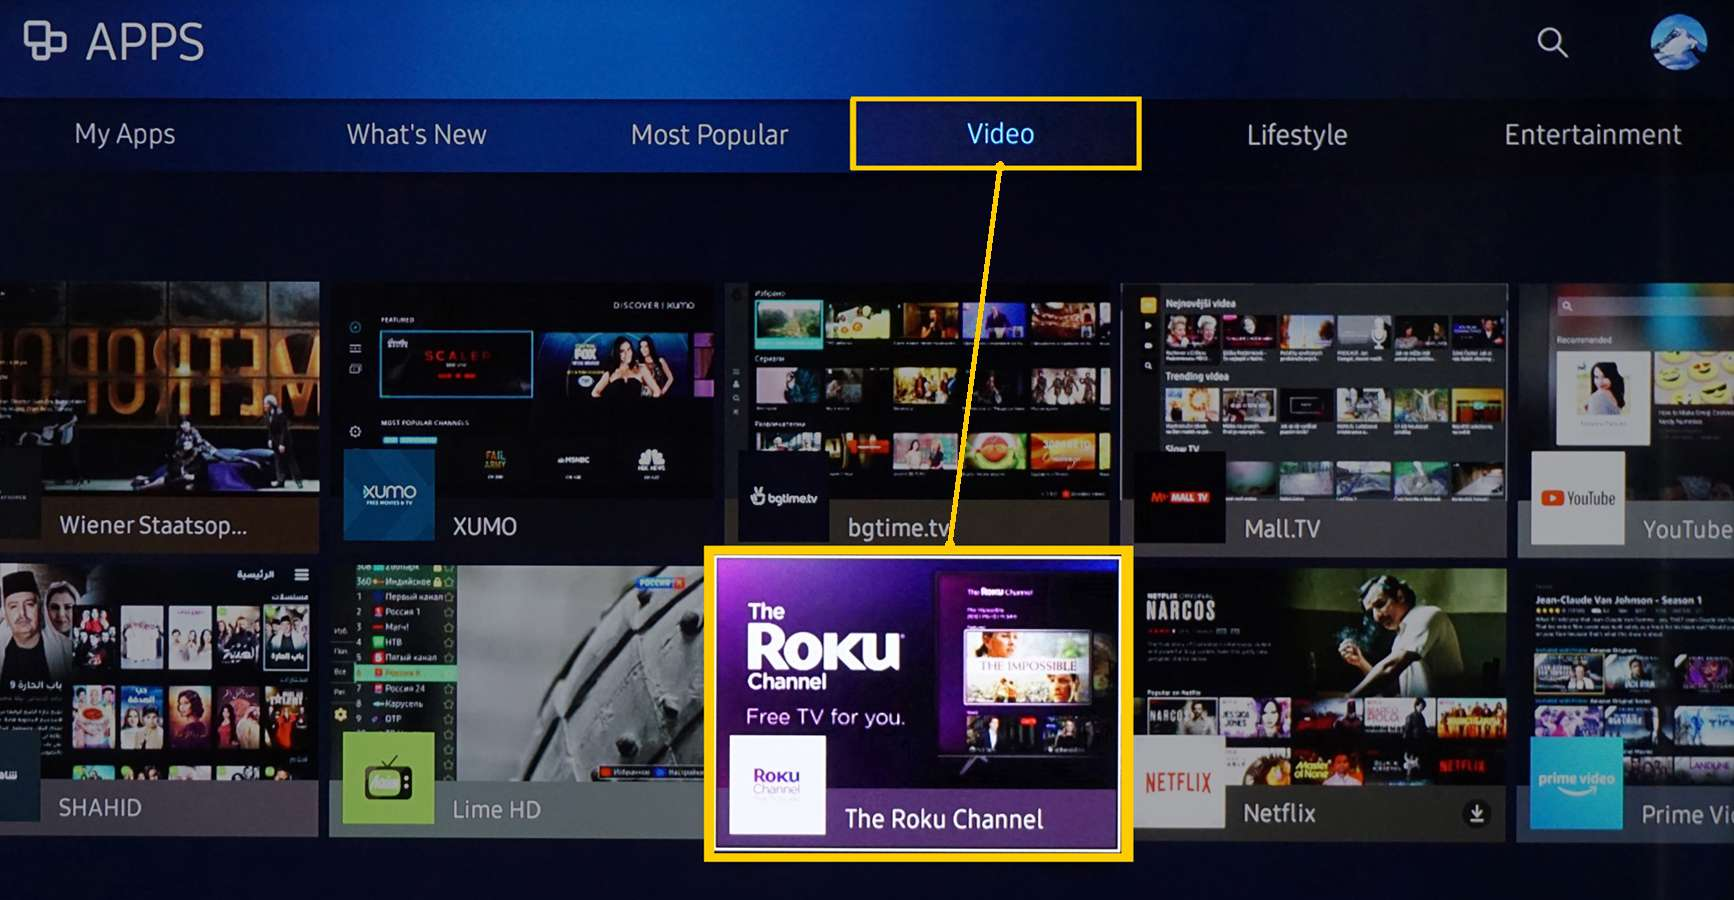 What Is the Roku Channel?